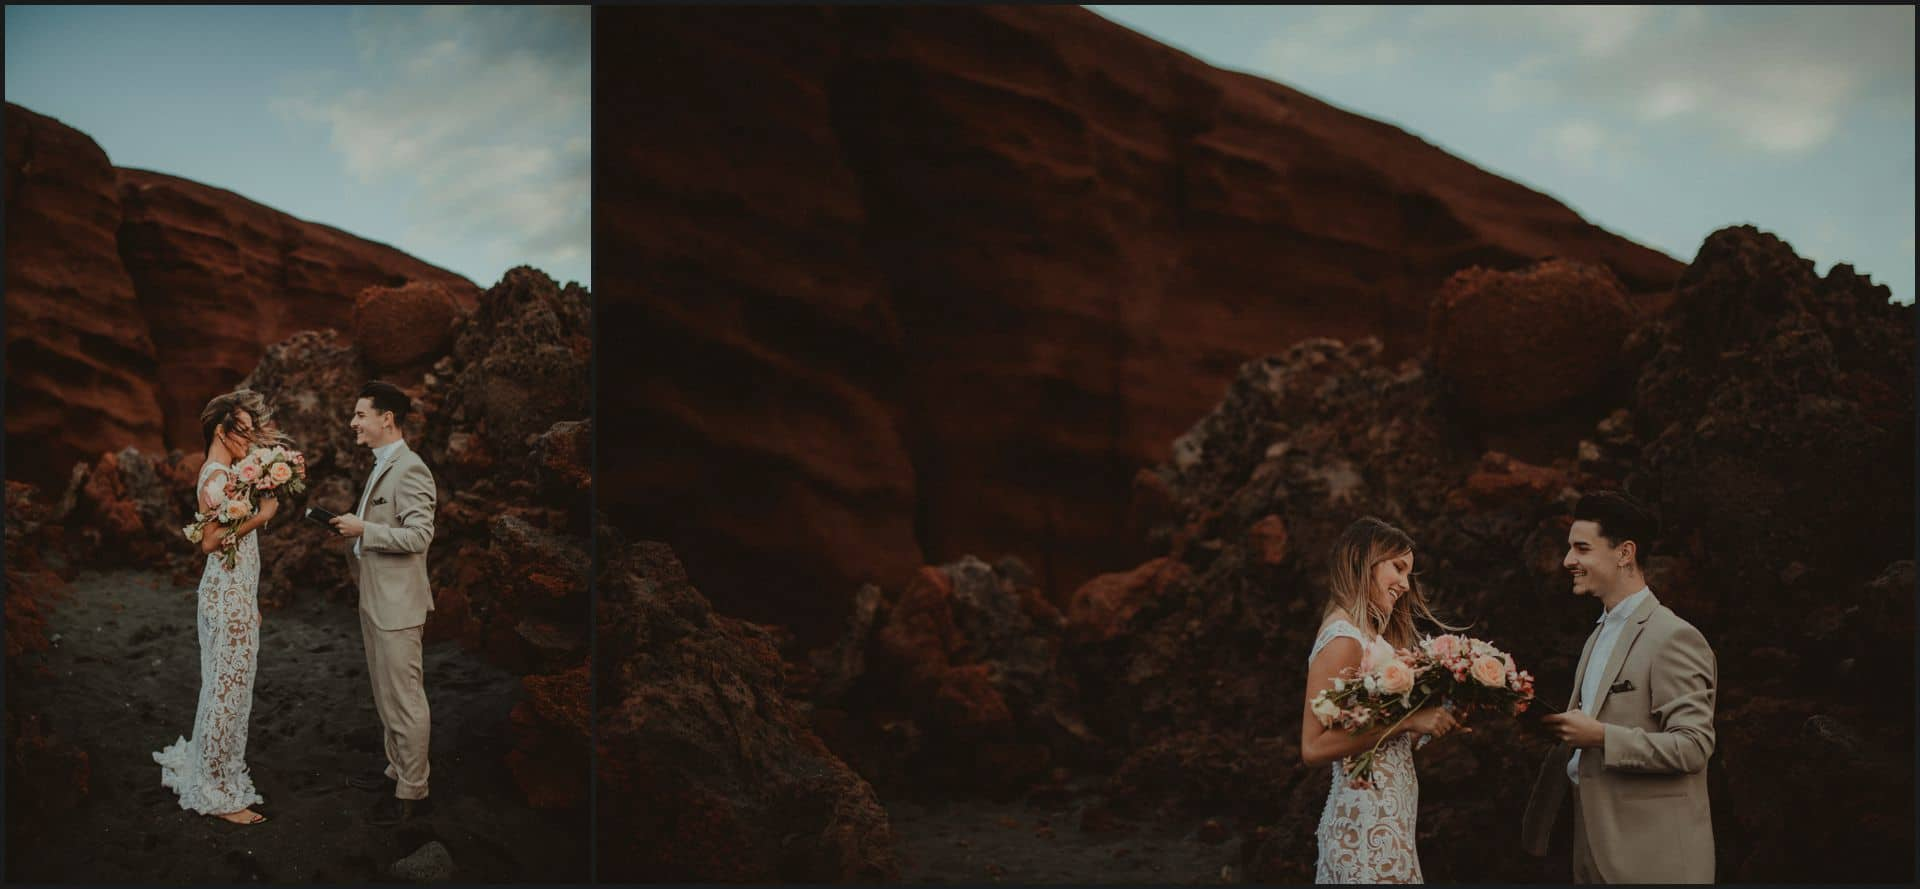 lanzarote, wedding, elopement, bride, groom, adventure wedding, beach wedding, ceremony